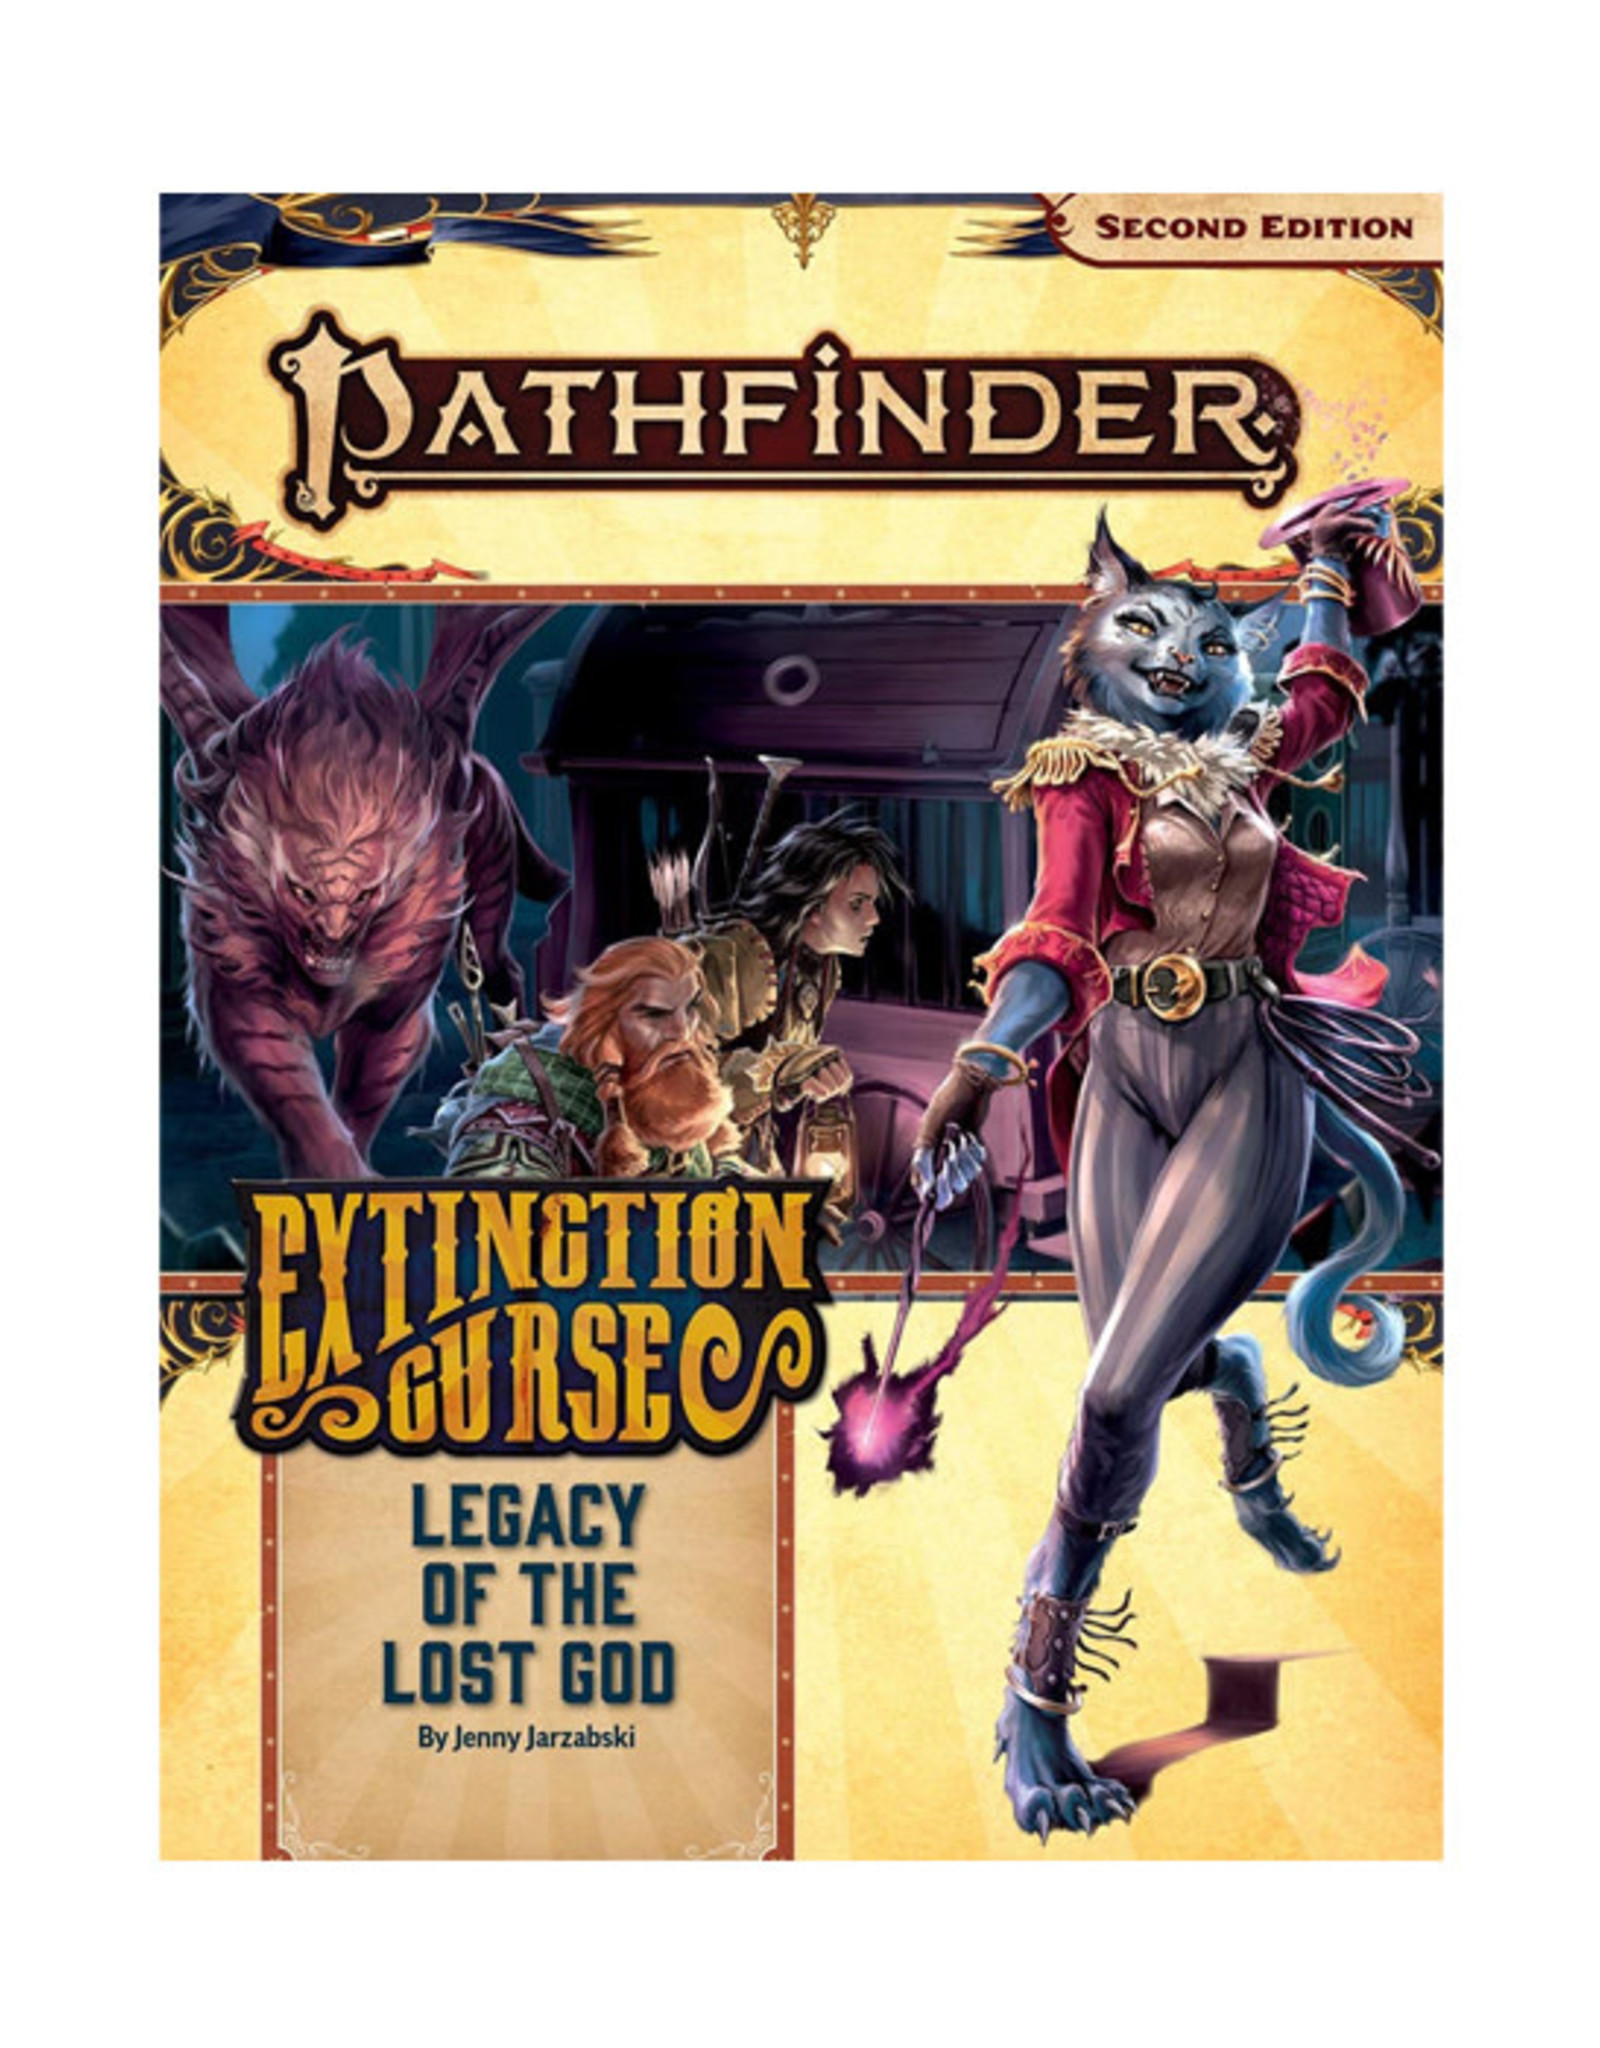 Pathfinder Pathfinder: 2nd Edition - Adventure Path - Extinction Curse - Legacy of the Lost God